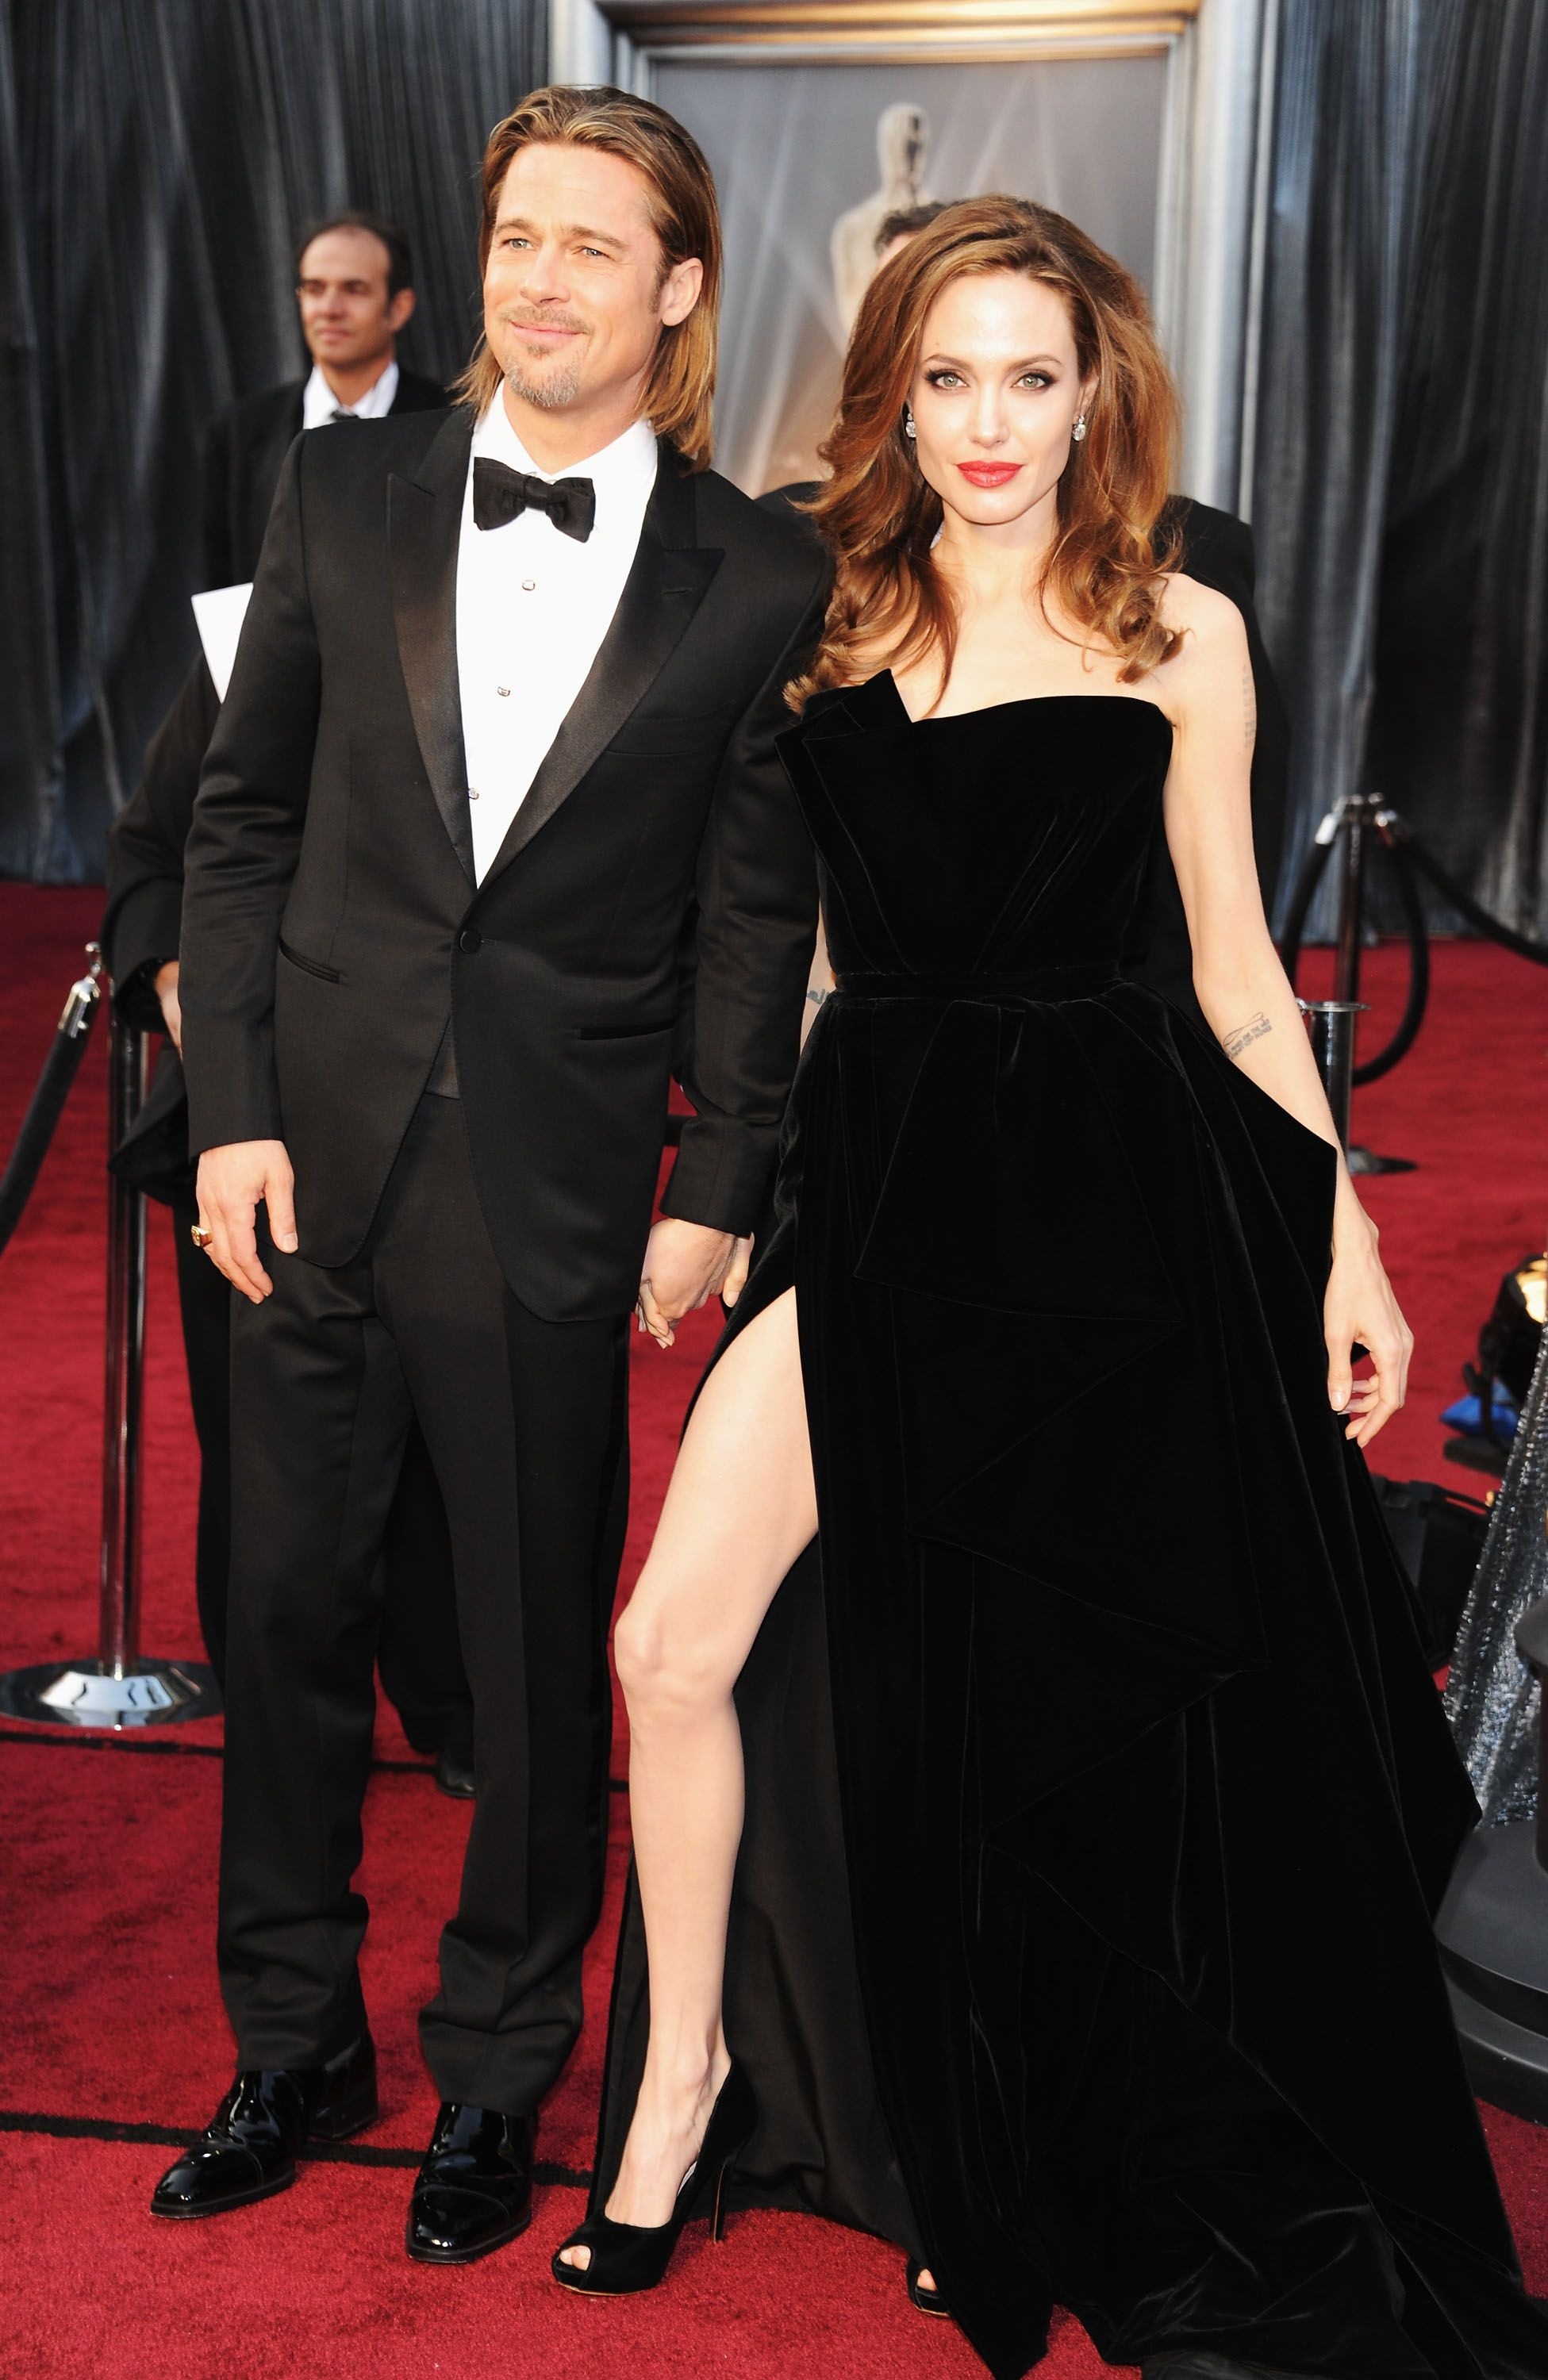 HOLLYWOOD, CA - FEBRUARY 26: Actors Brad Pitt and Angelina Jolie arrive at the 84th Annual Academy Awards held at the Hollywood & Highland Center on February 26, 2012 in Hollywood, California. (Photo by Kevin Mazur/WireImage)